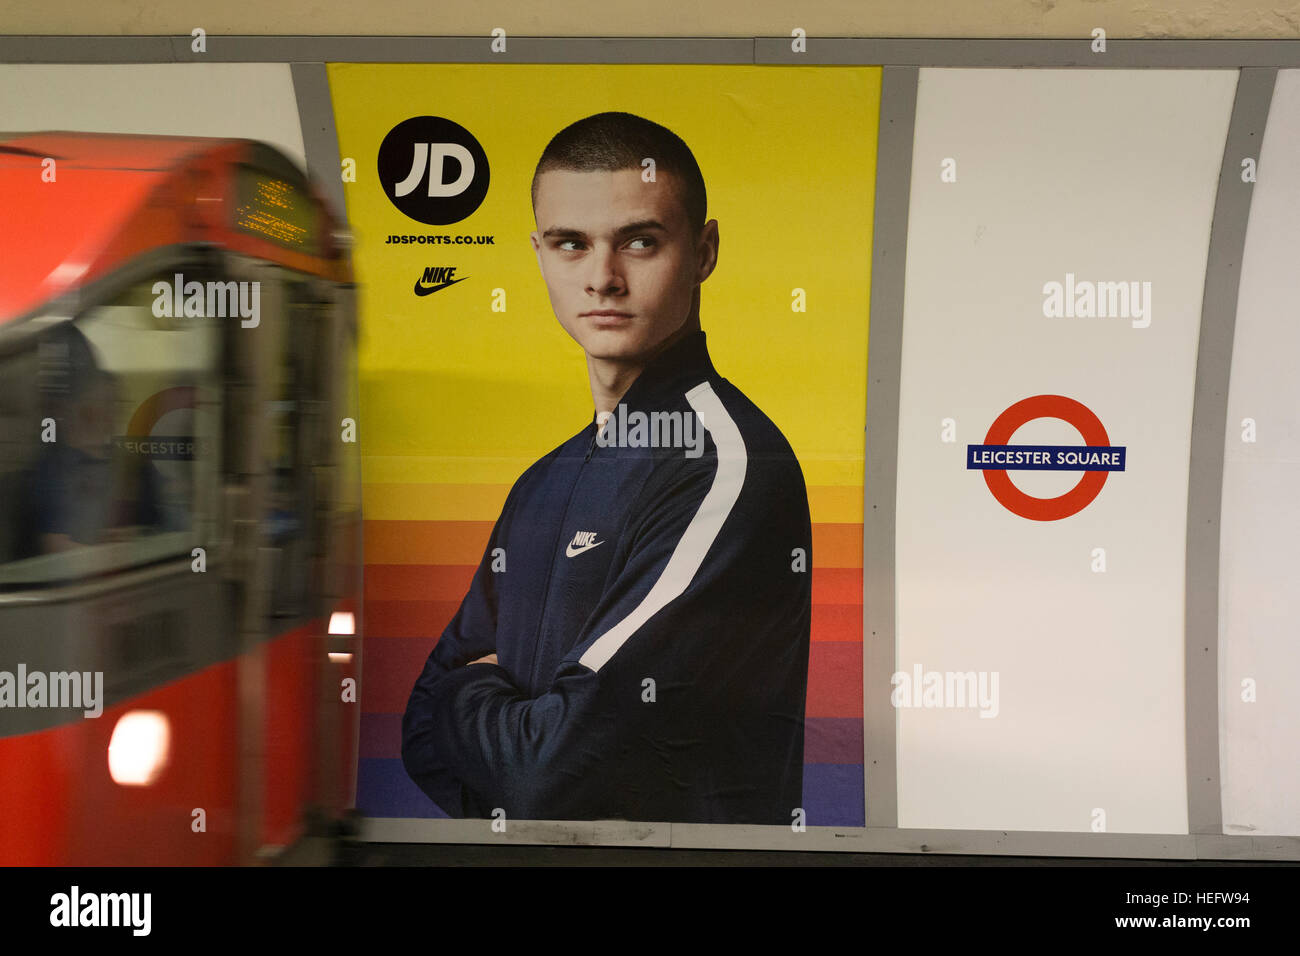 A JD Sports advert on Leicester Square tube station as a train arrives - Stock Image